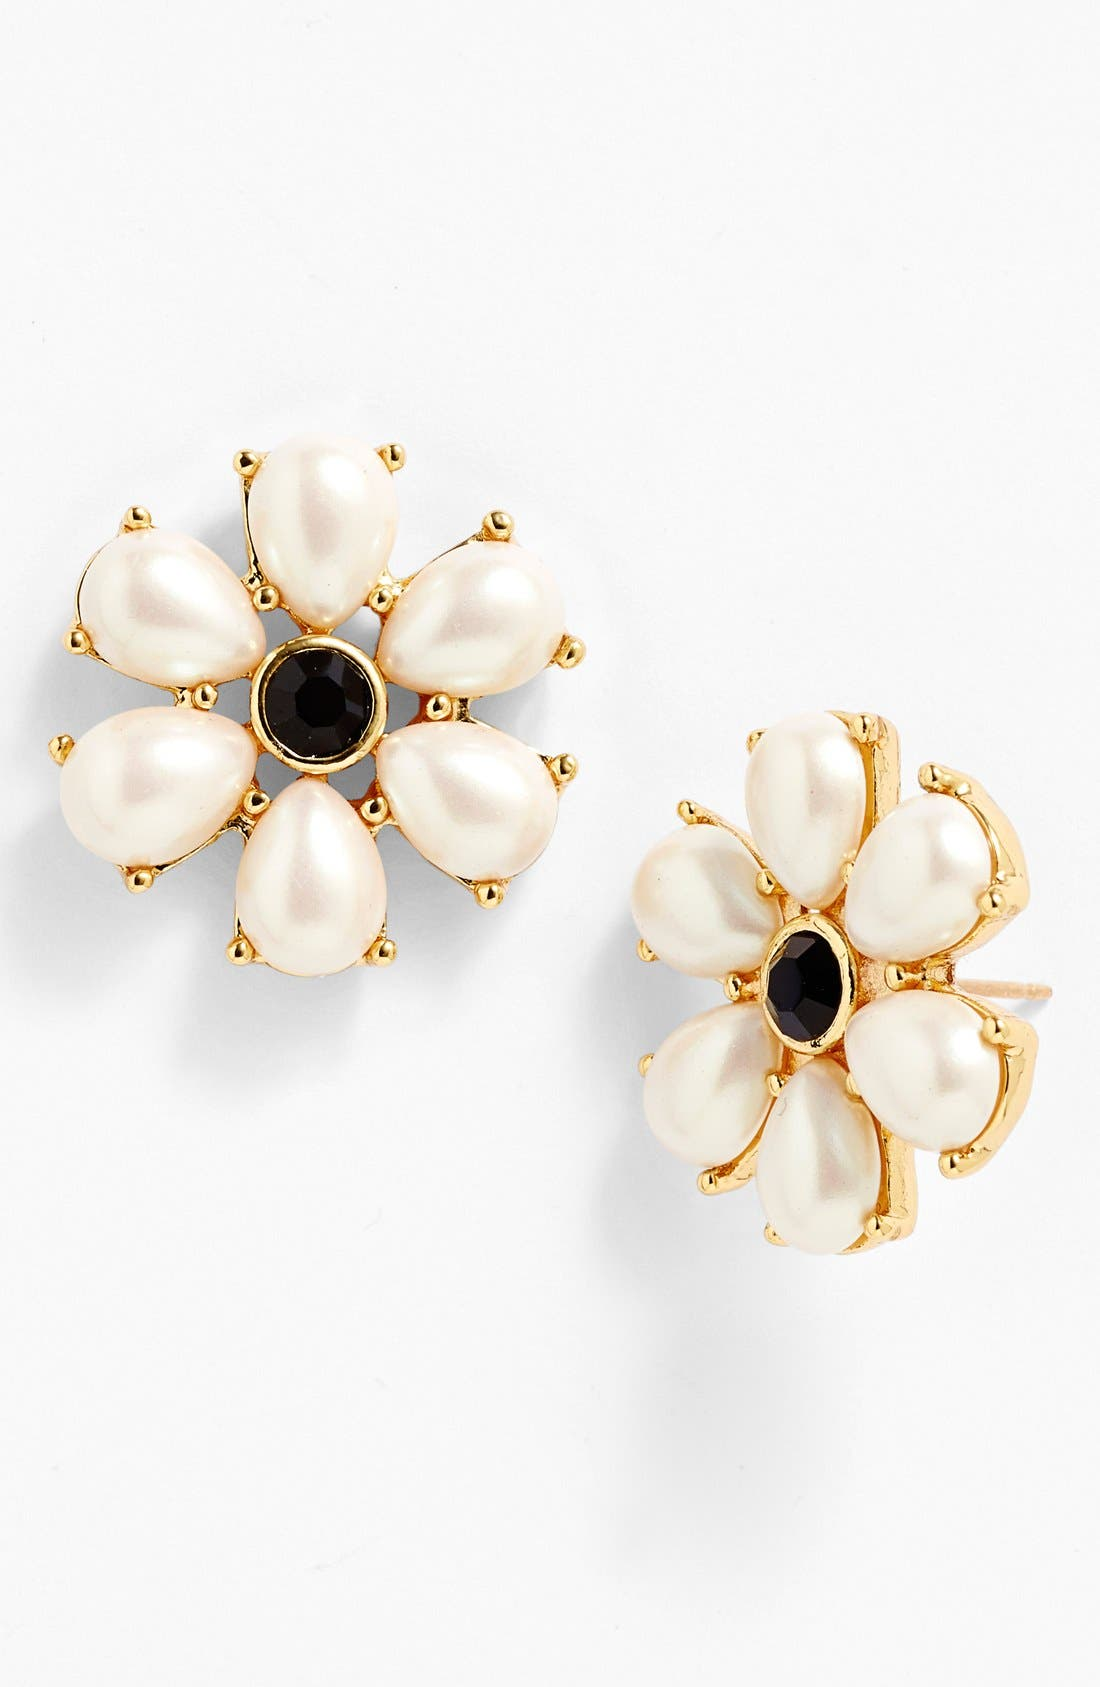 Alternate Image 1 Selected - kate spade new york 'lady antoinette' stud earrings